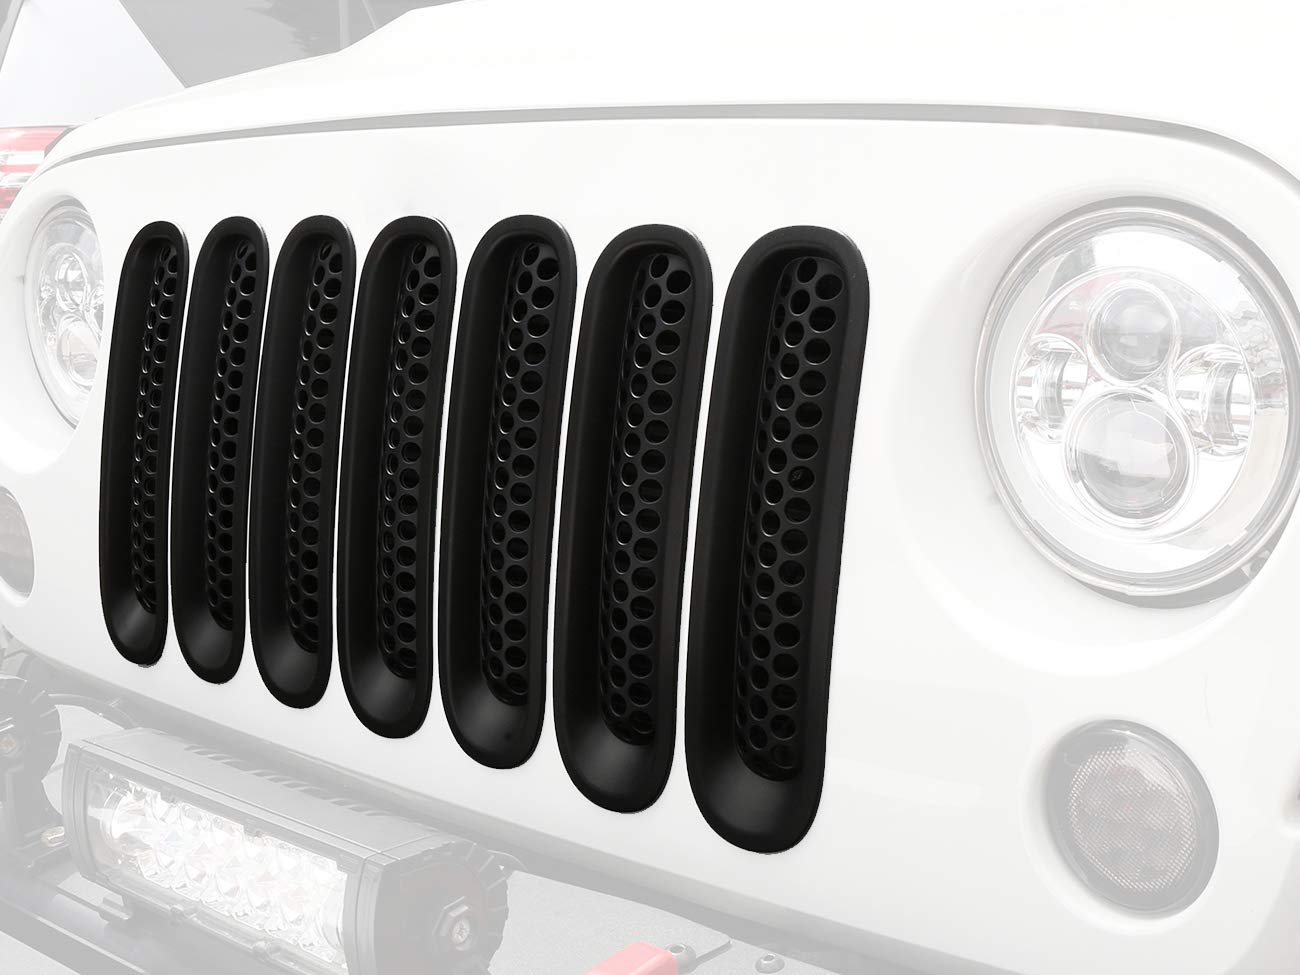 Hooke Road Matte Black JK Front Grill Mesh Inserts, Clip-in Deflector Guard for Jeep JK Wrangler & Unlimited 2007-2015